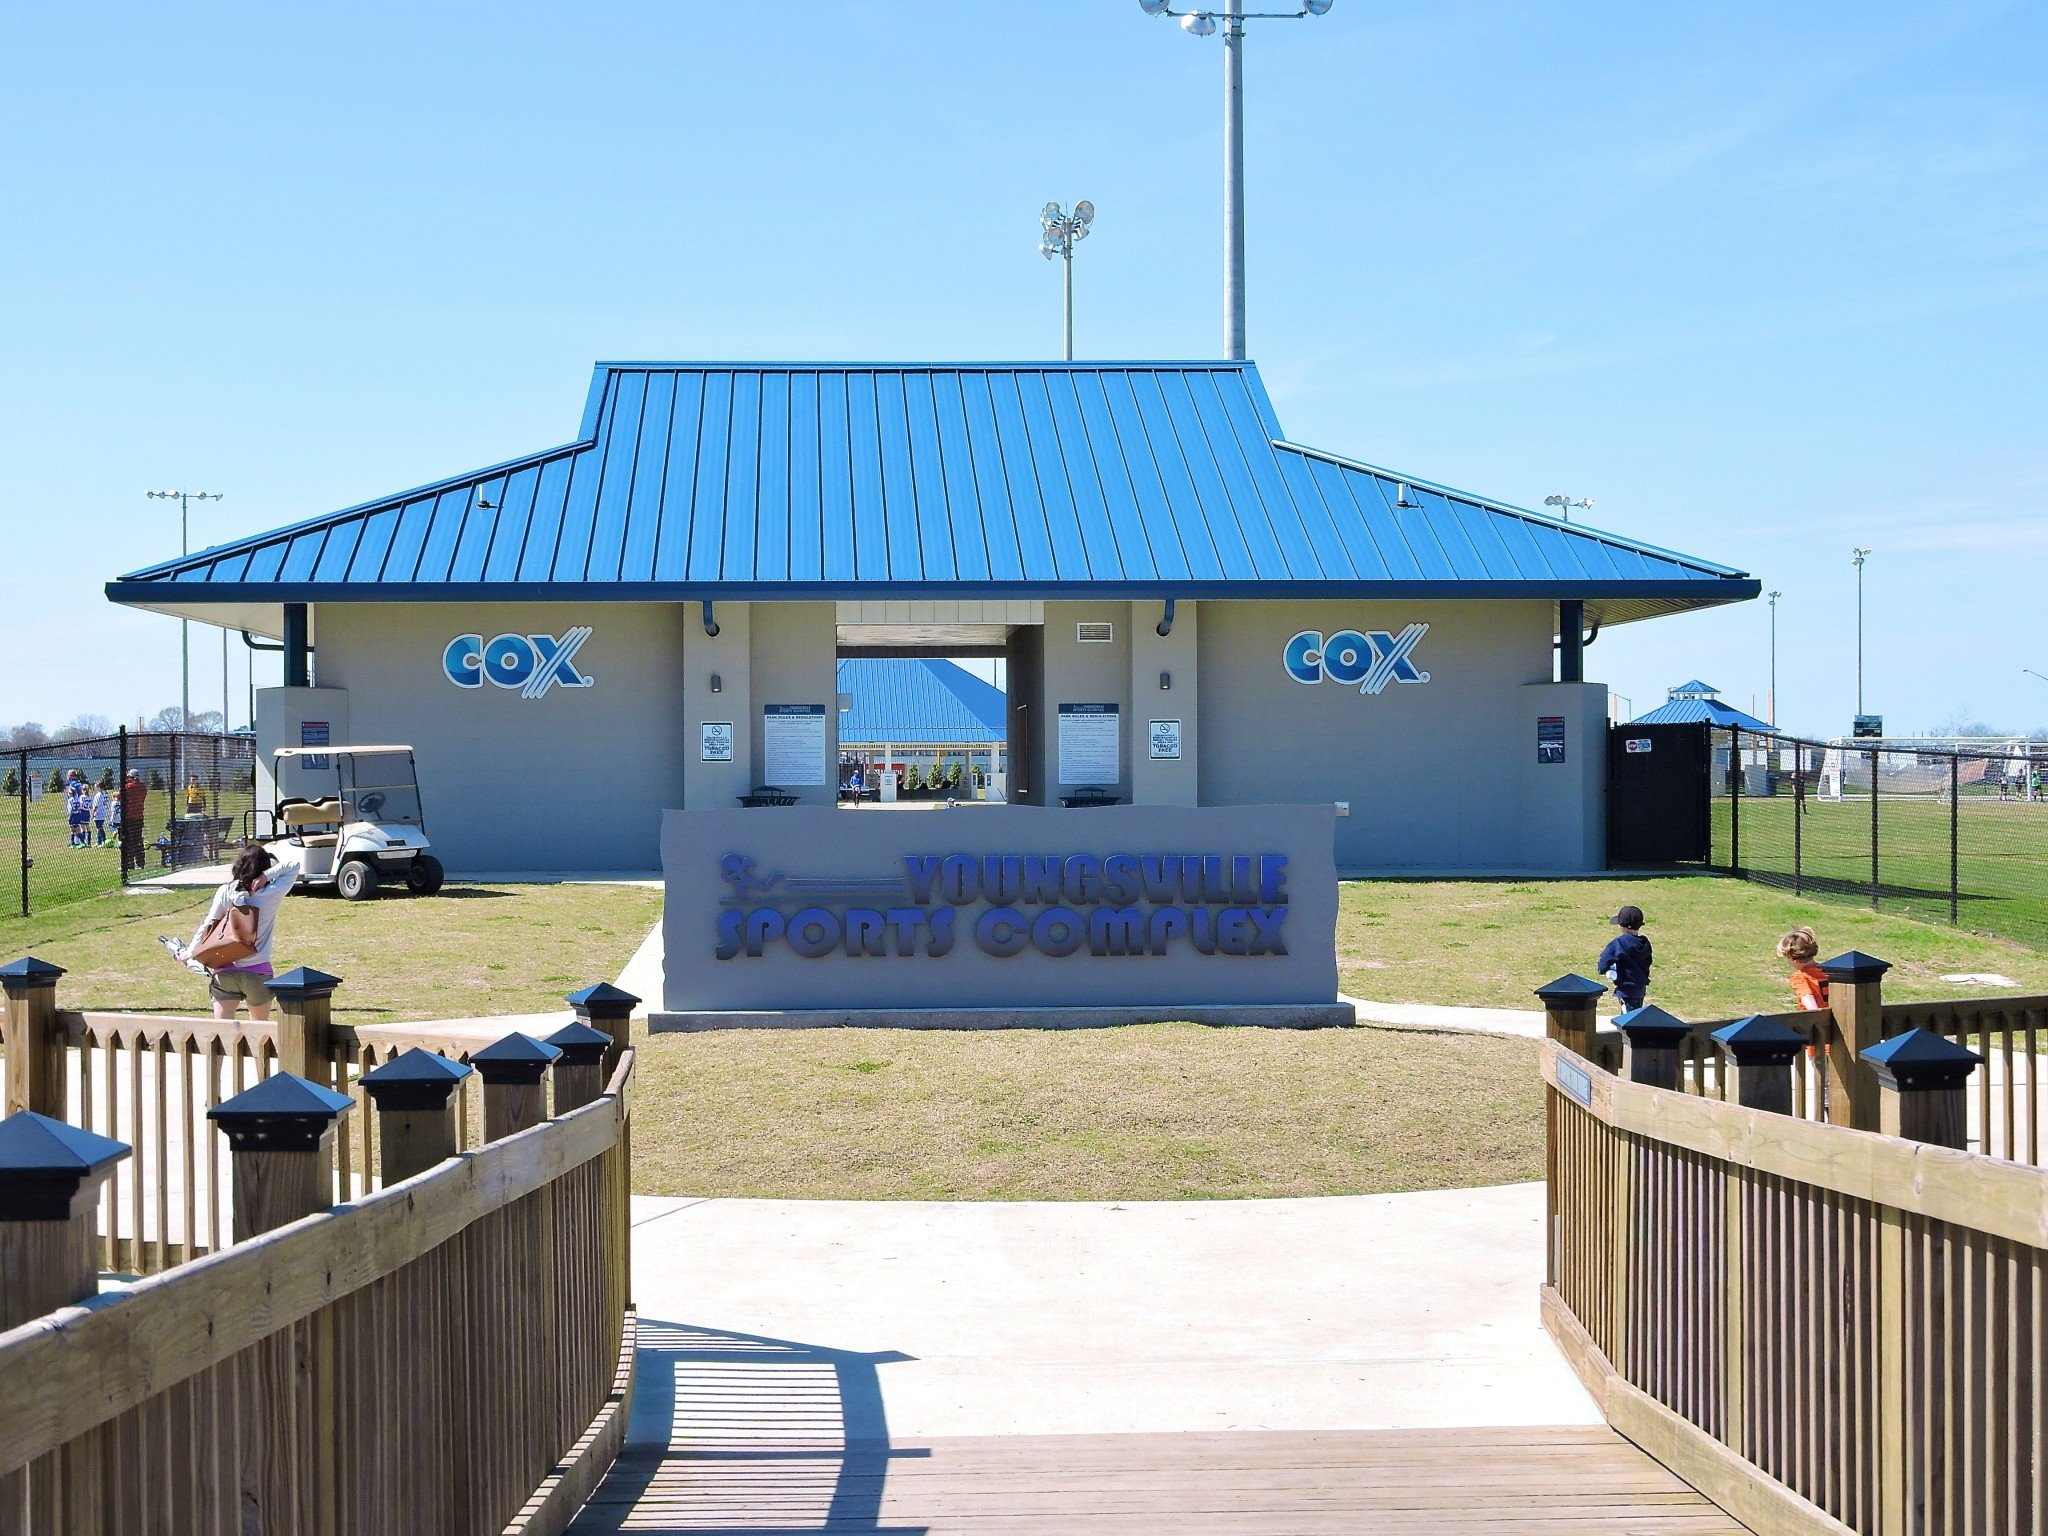 Welcome to the Youngsville Sports Complex!